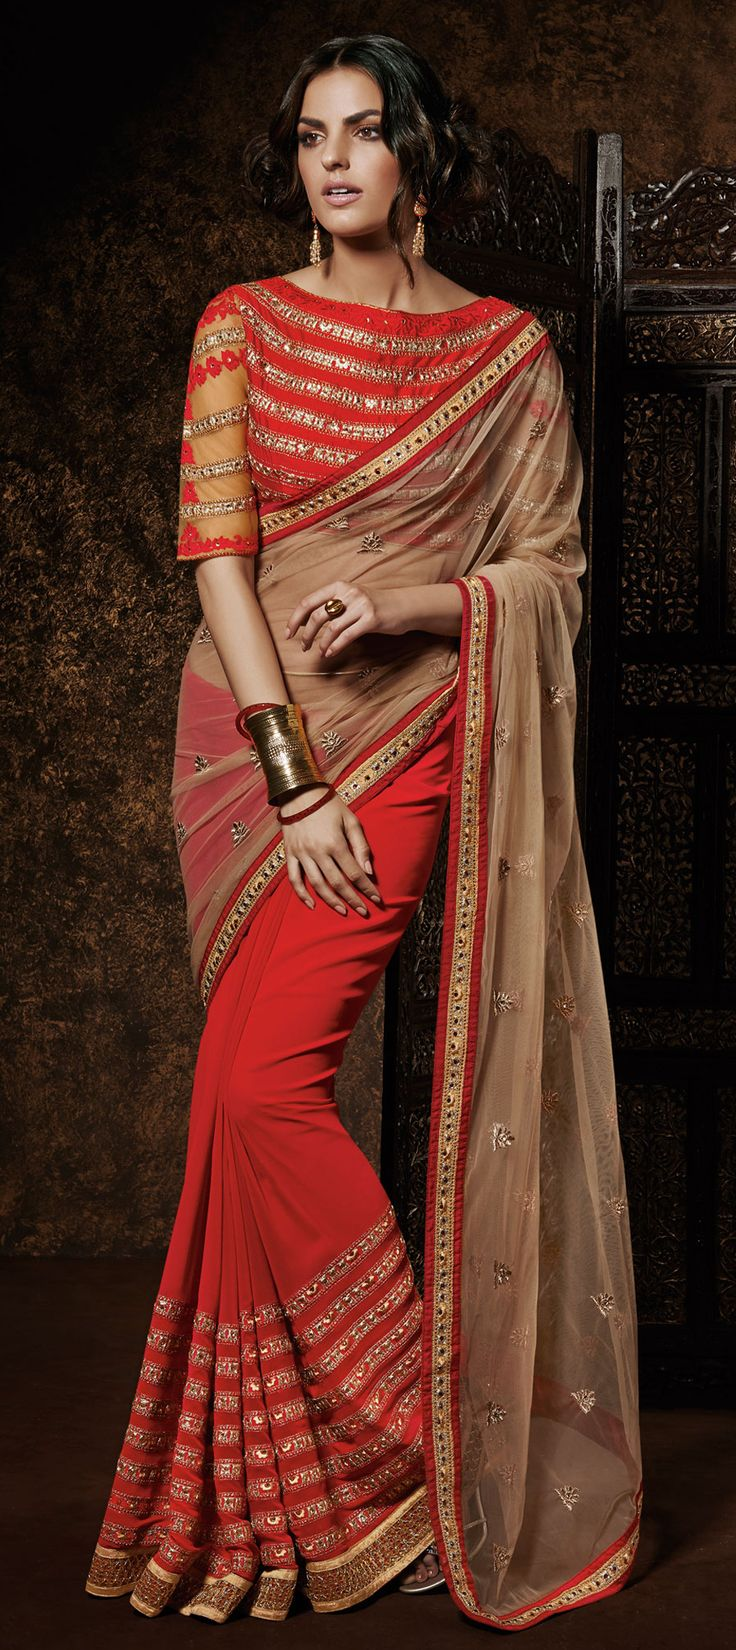 154938: Bridal Saree - new designerwear for brides and party-lovers.